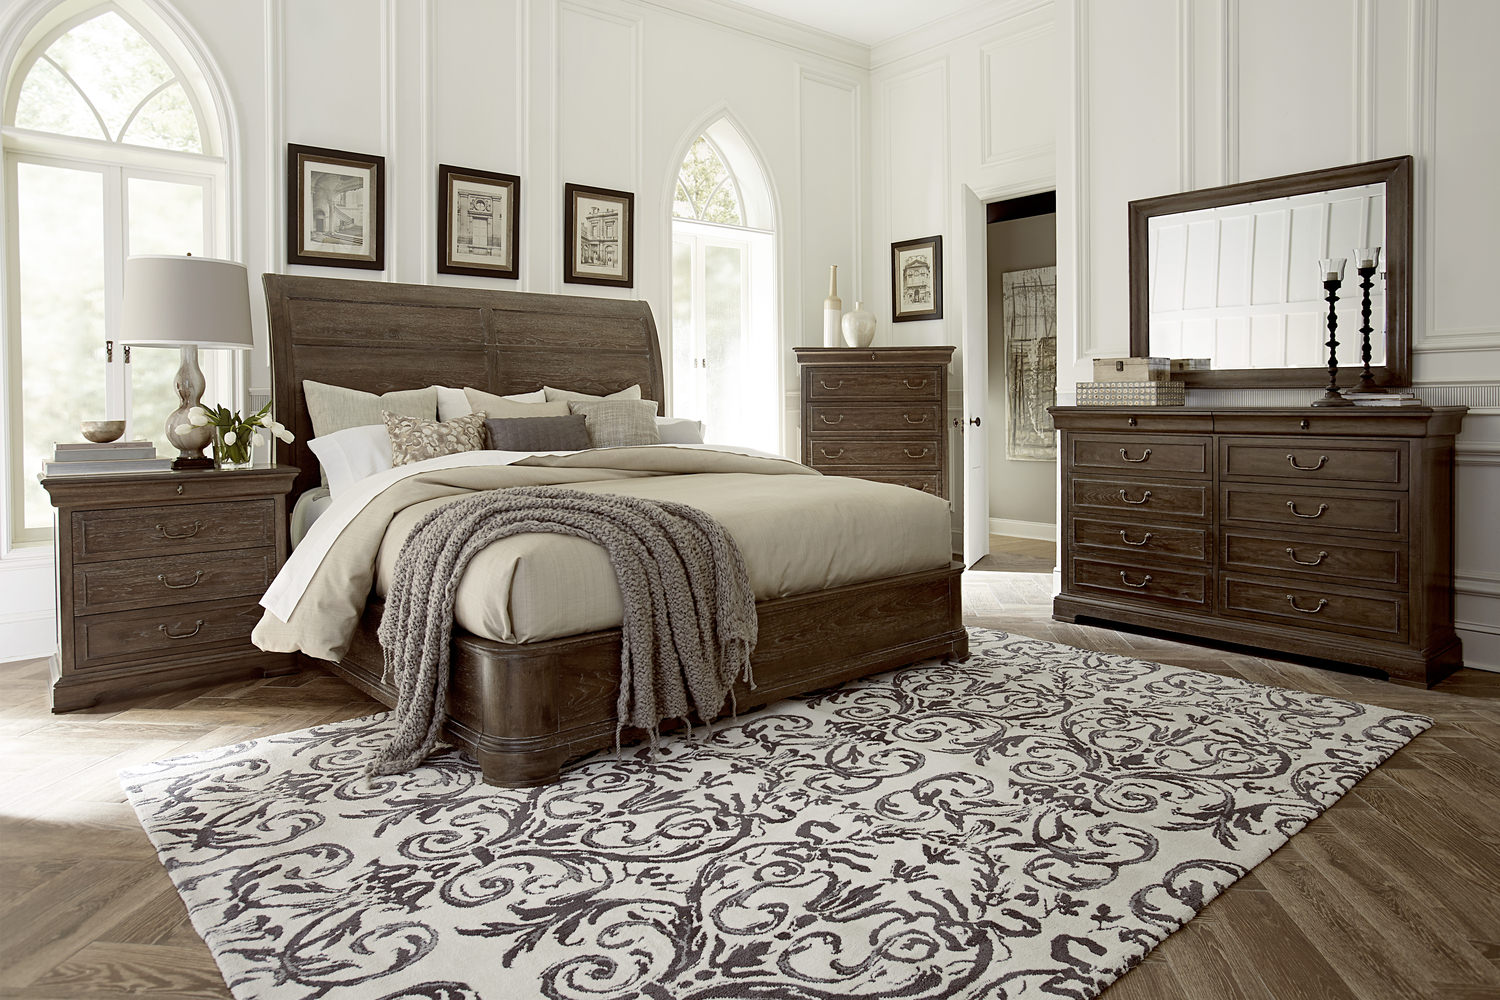 chaumont bedroom suite by a r t hom furniture 18196 | 142136 2